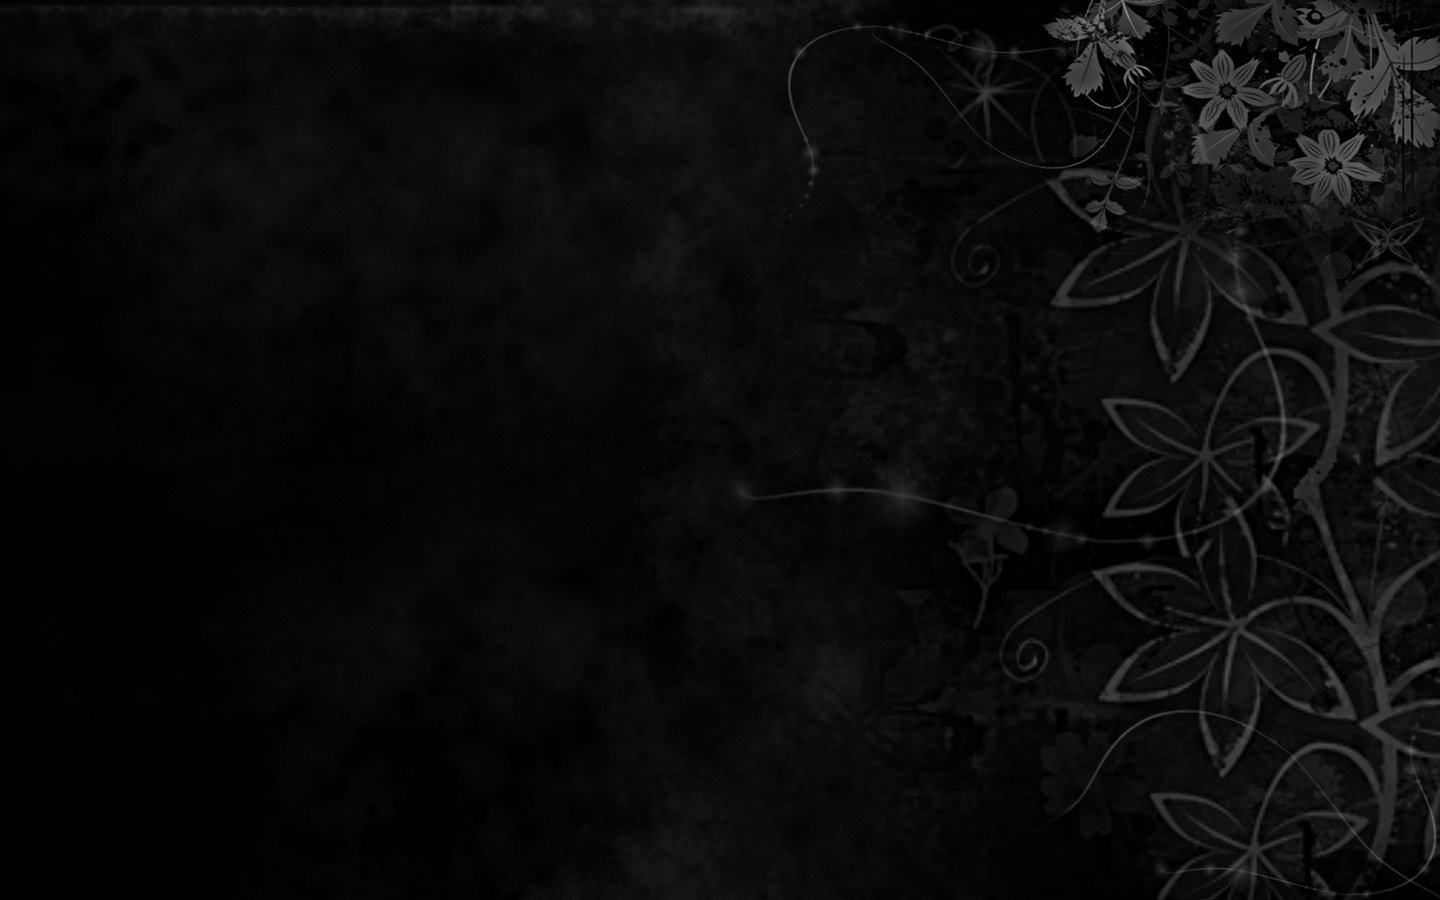 Black Wallpaper Android Phones HD 6316 Cool Walldiskpaper 1440x900